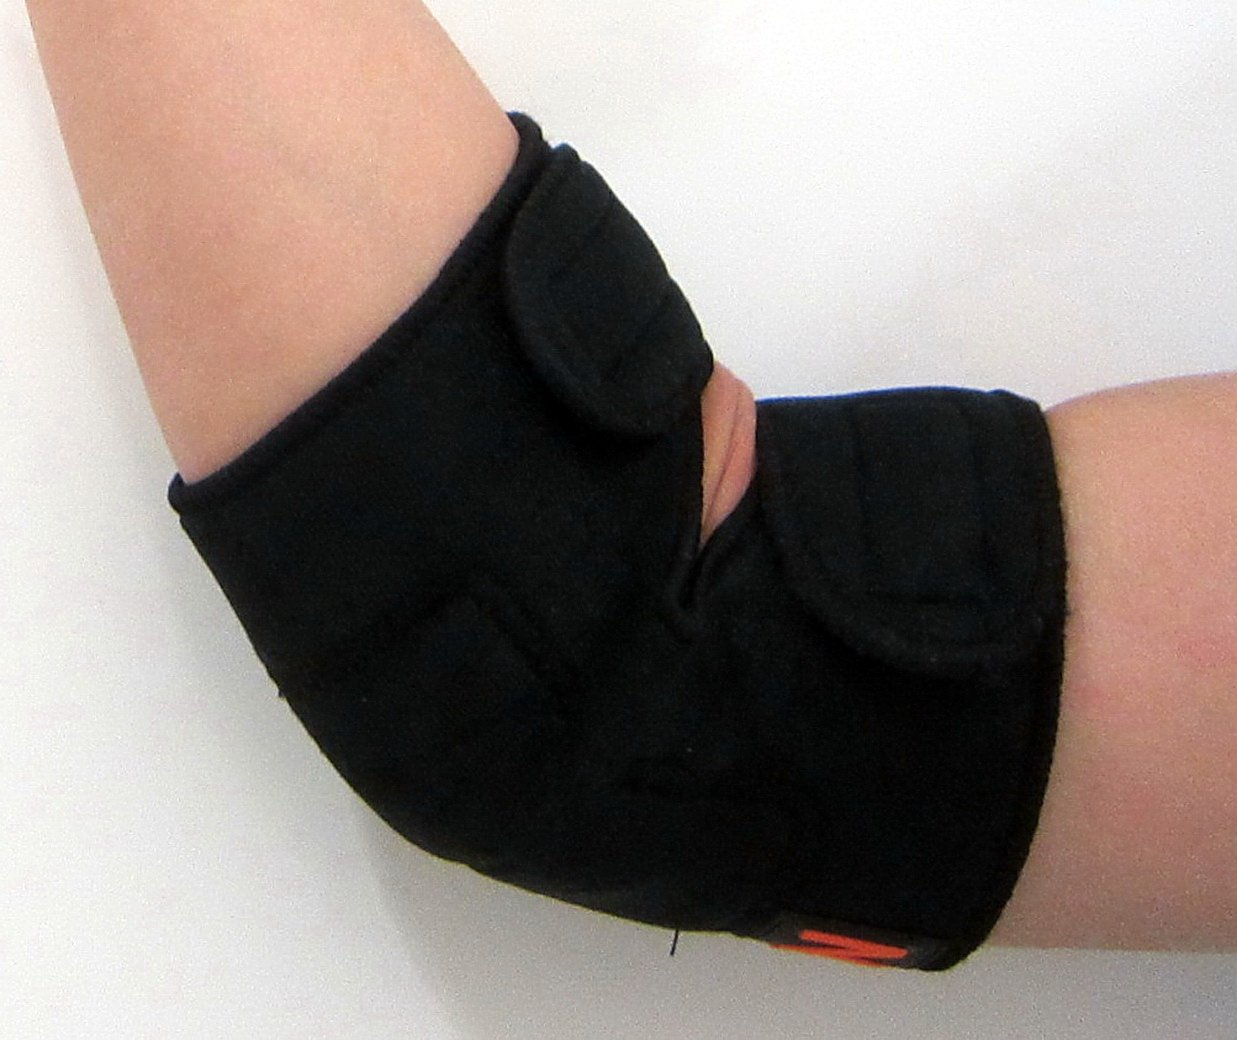 NMT Elbow/Ankle Brace ~ Arthritis, Joint, Pain Relief, Support ~ New Tourmaline Healing Remedy for Tennis Elbow and Swollen Ankles ~ Natural Physical Therapy ~ Adjustable Black Wrap for Men and Women